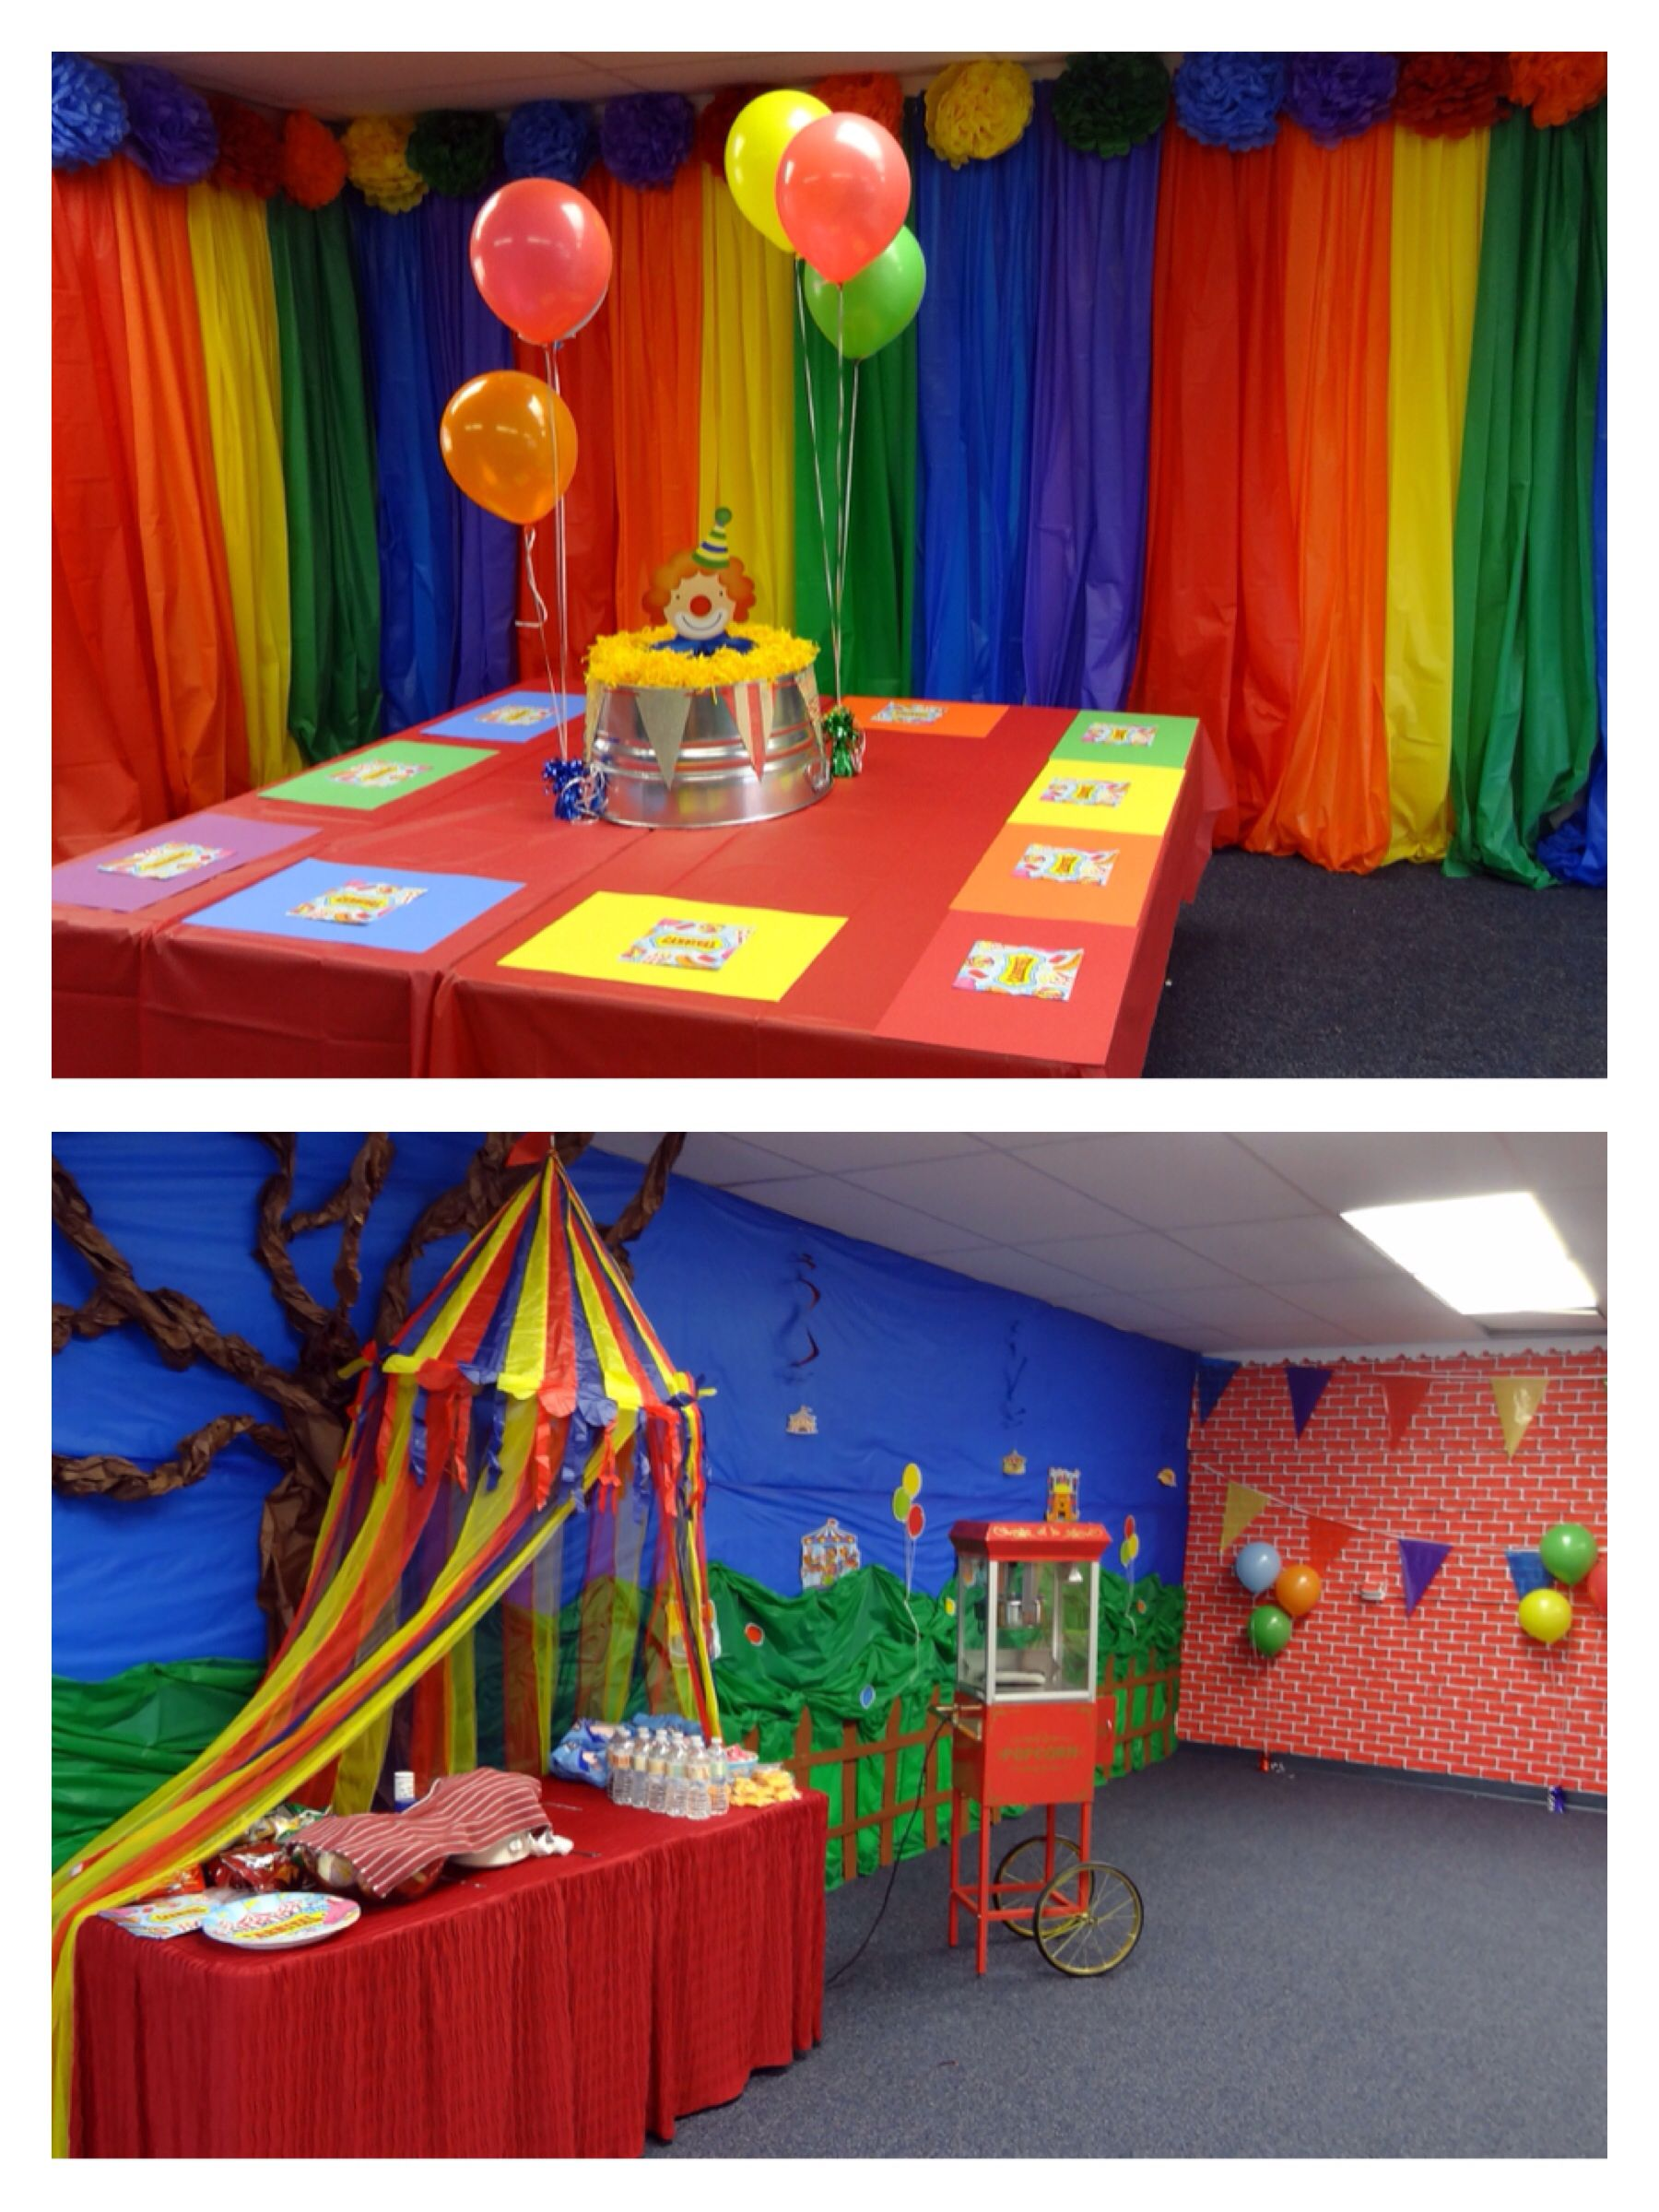 Carnival or circus theme party backdrop tables decorations under the big top carnival - Carnival theme decoration ideas ...